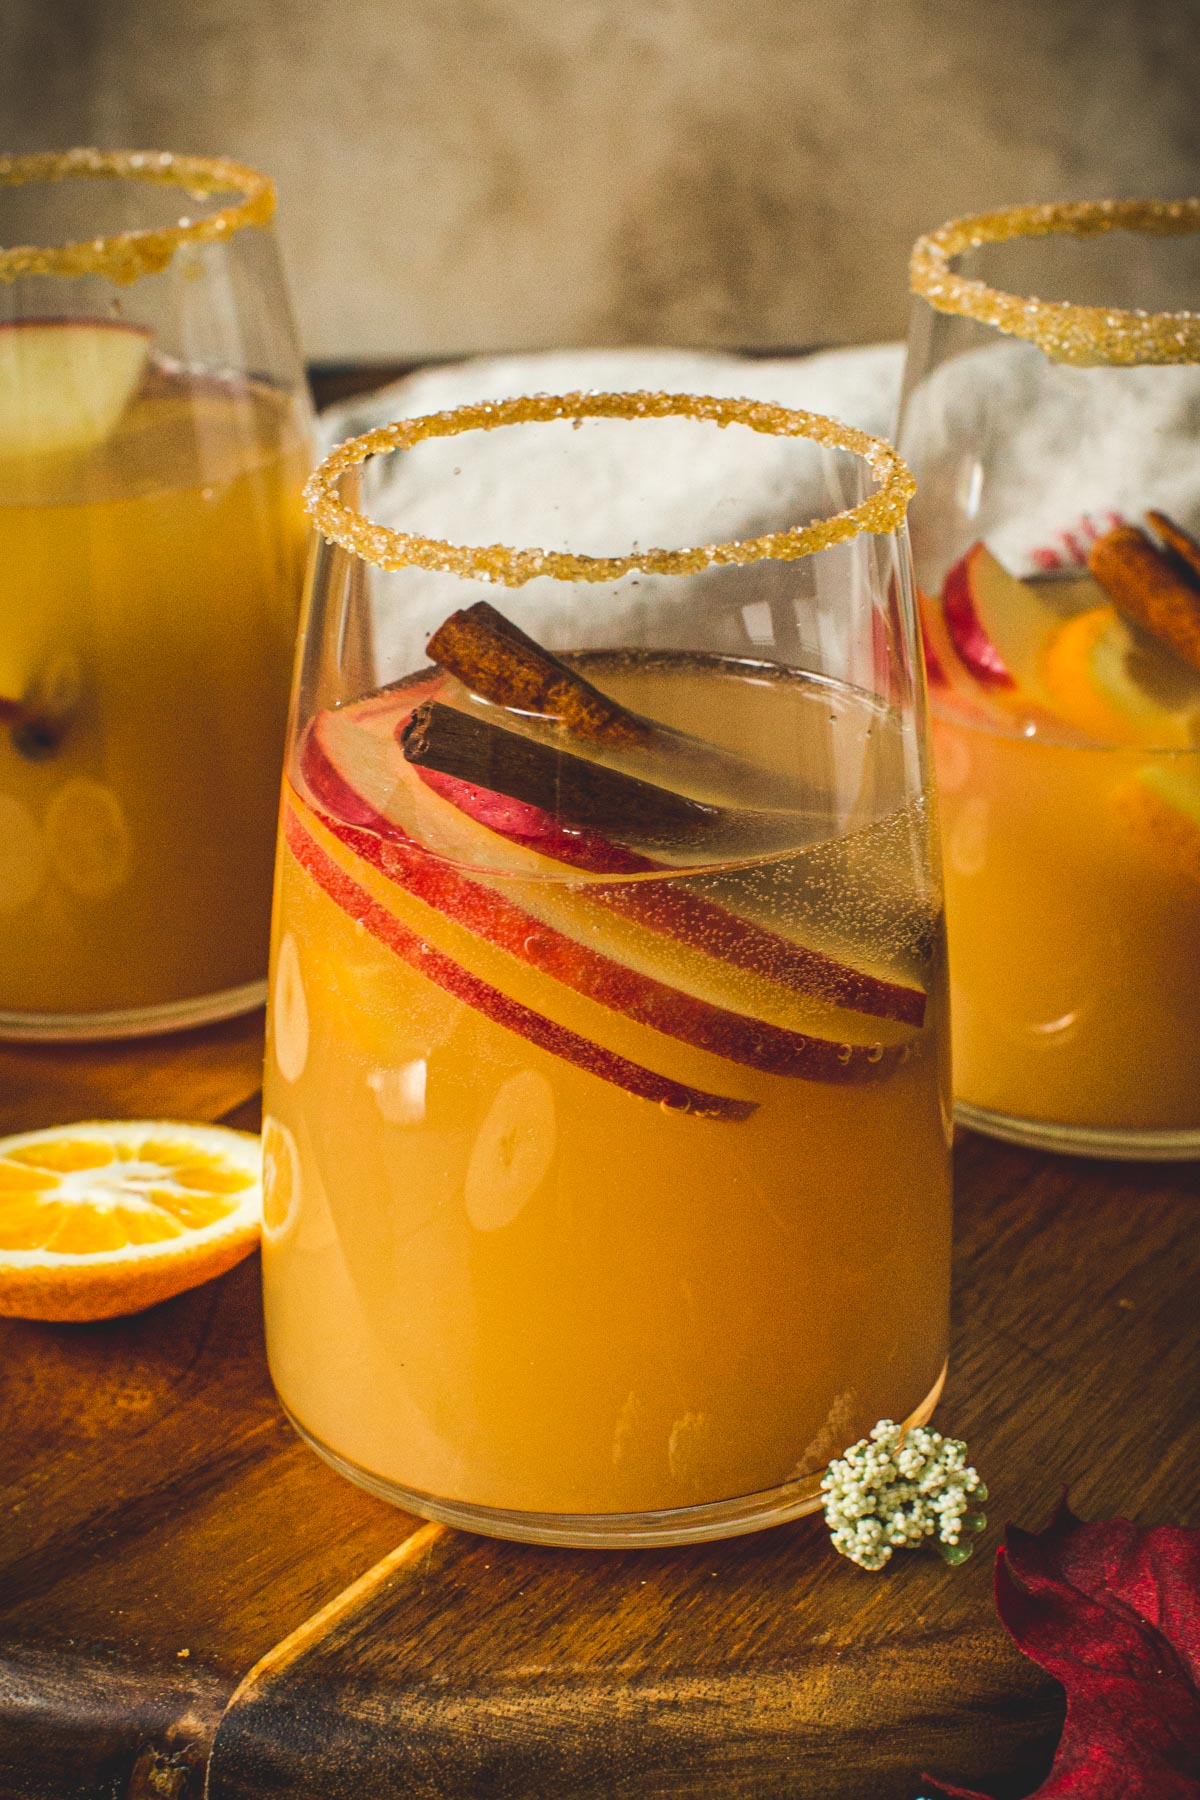 Caramel apple sangria in a glass with a caramel and sugar coated rim.